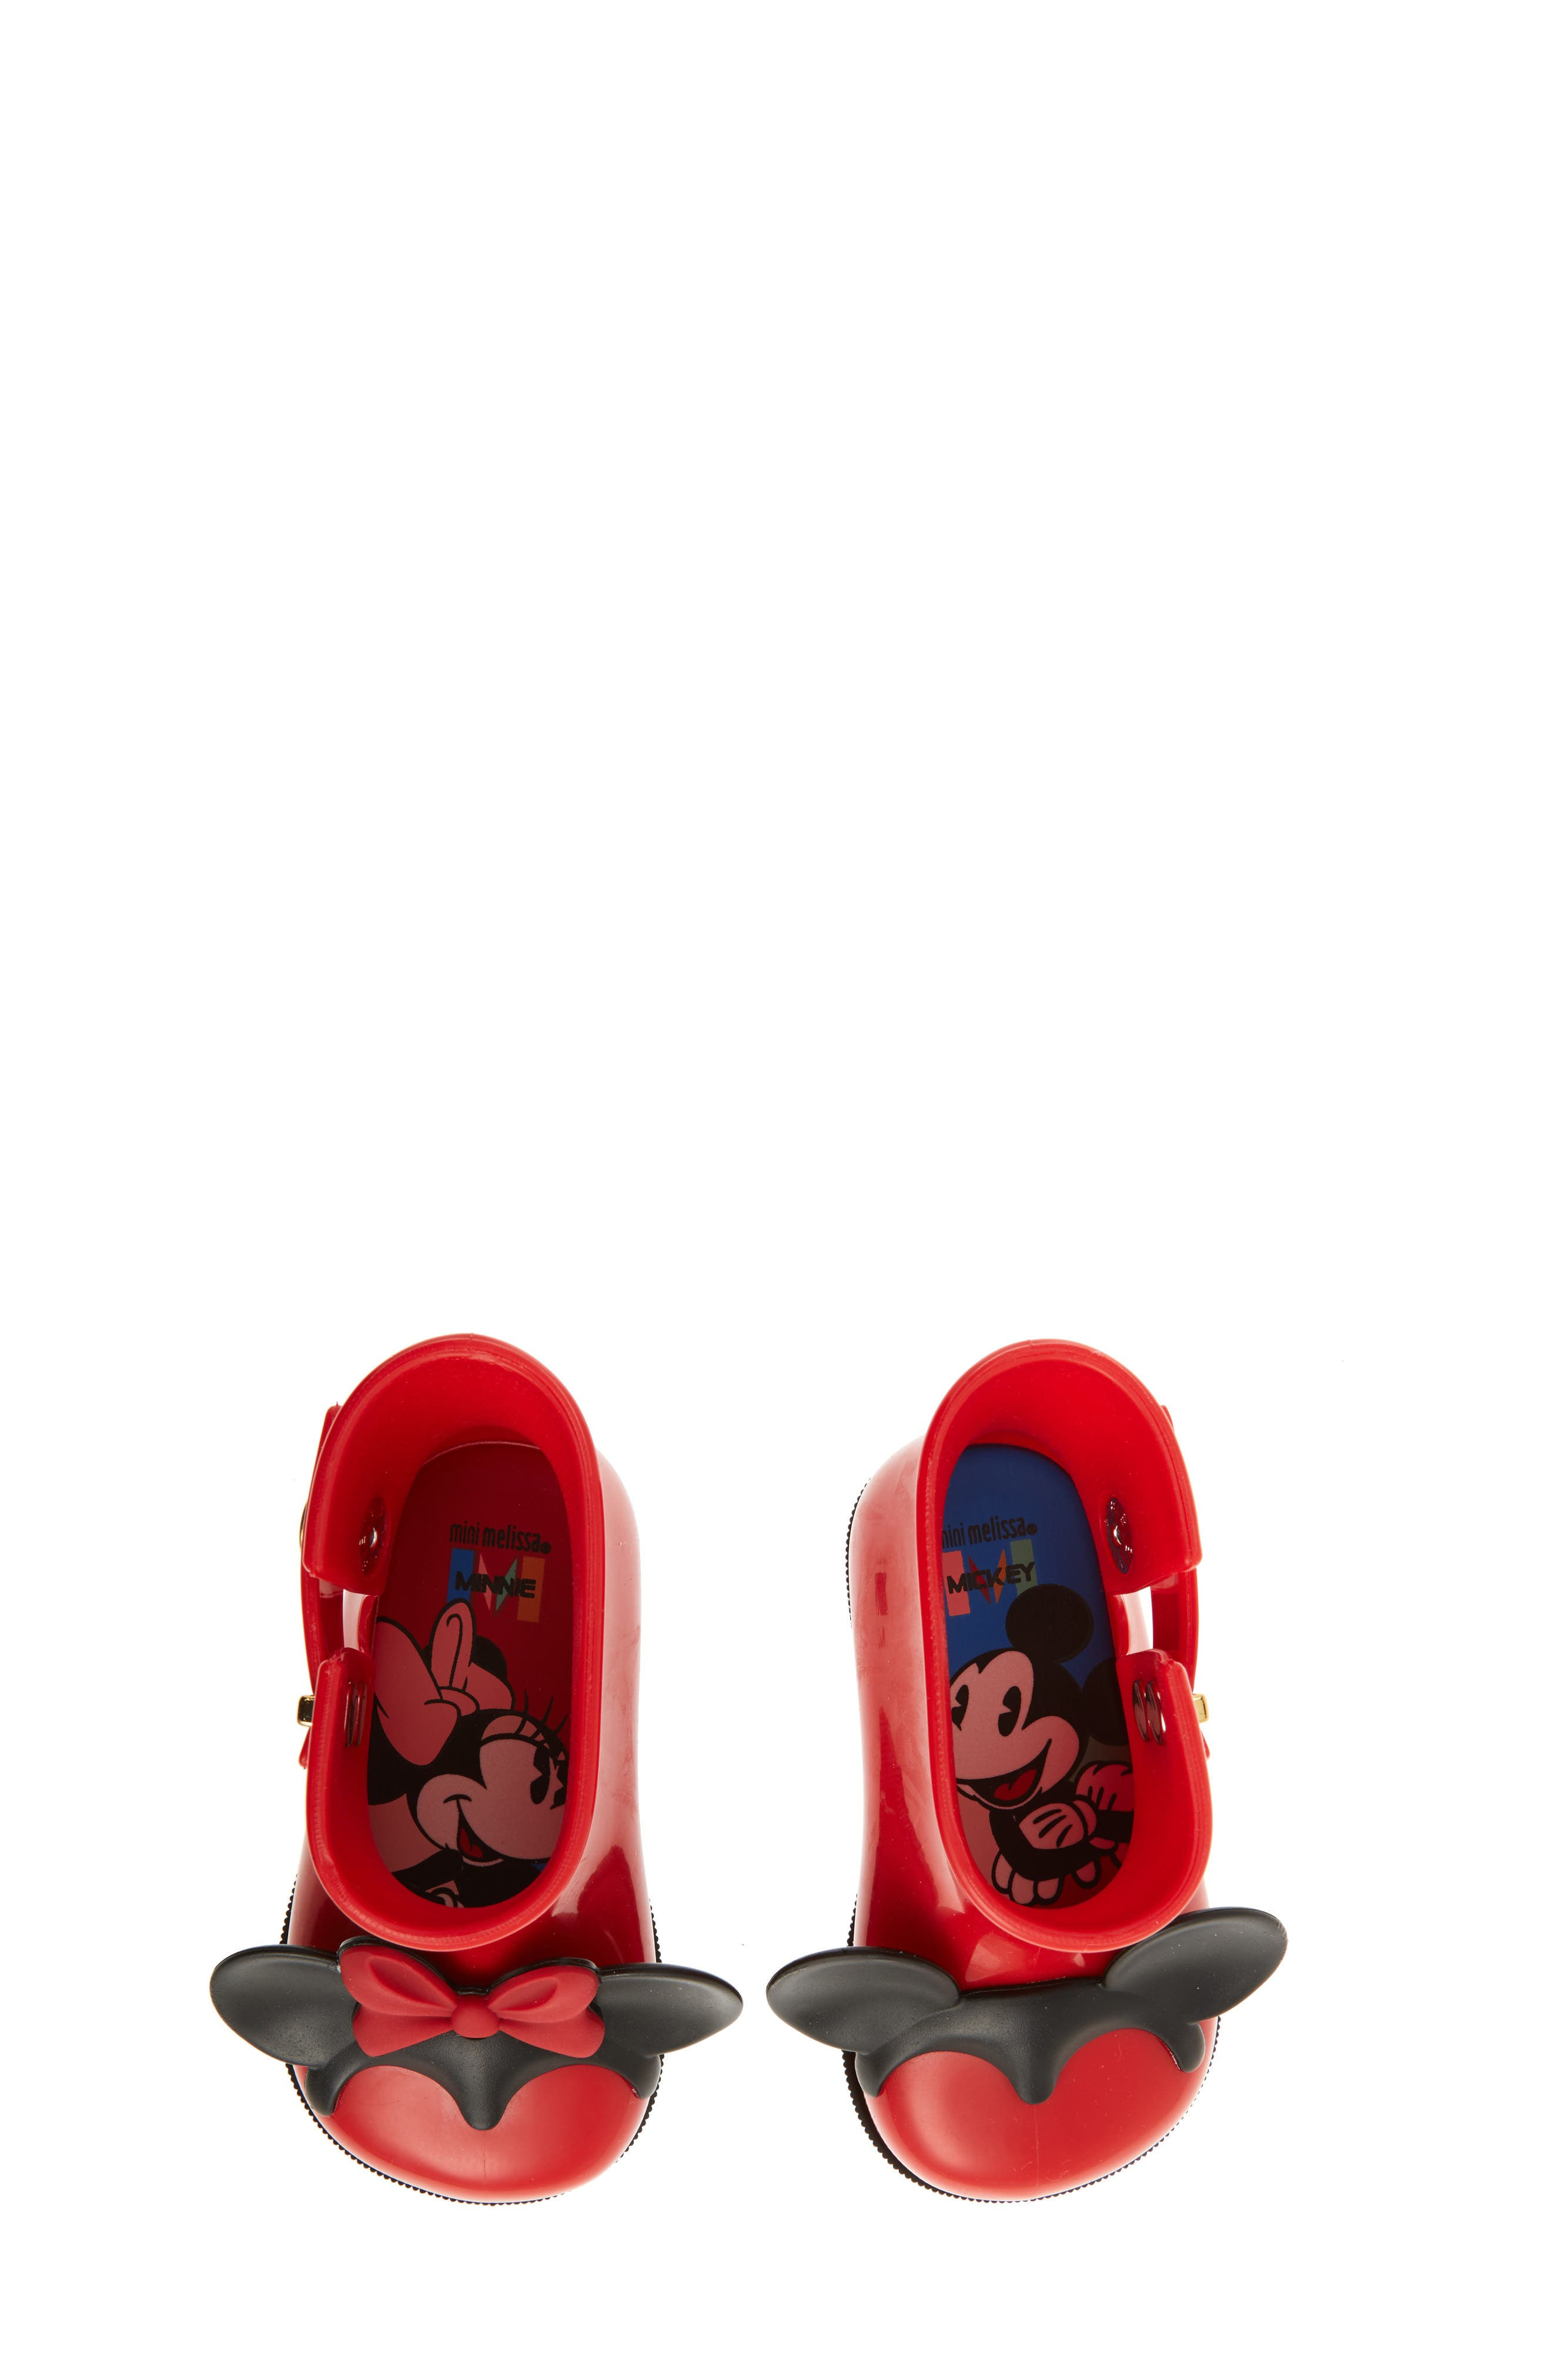 Mini Melissa Sugar Rain Disney Twins Waterproof Bootie,                             Alternate thumbnail 5, color,                             Red